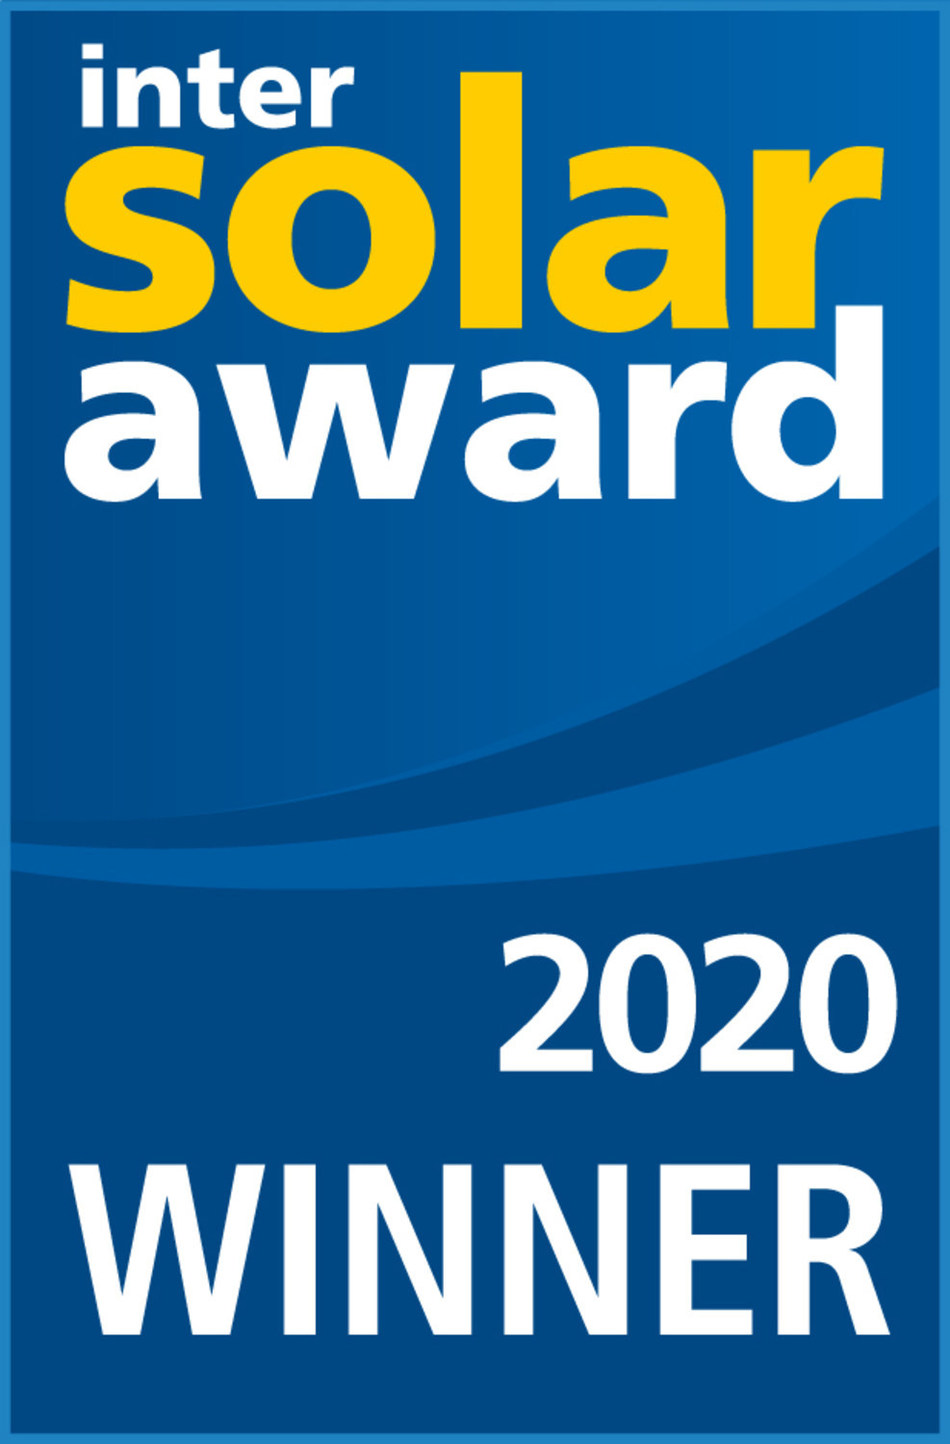 Intersolar AWARD 2020 WINNER (PRNewsfoto/REC Group)